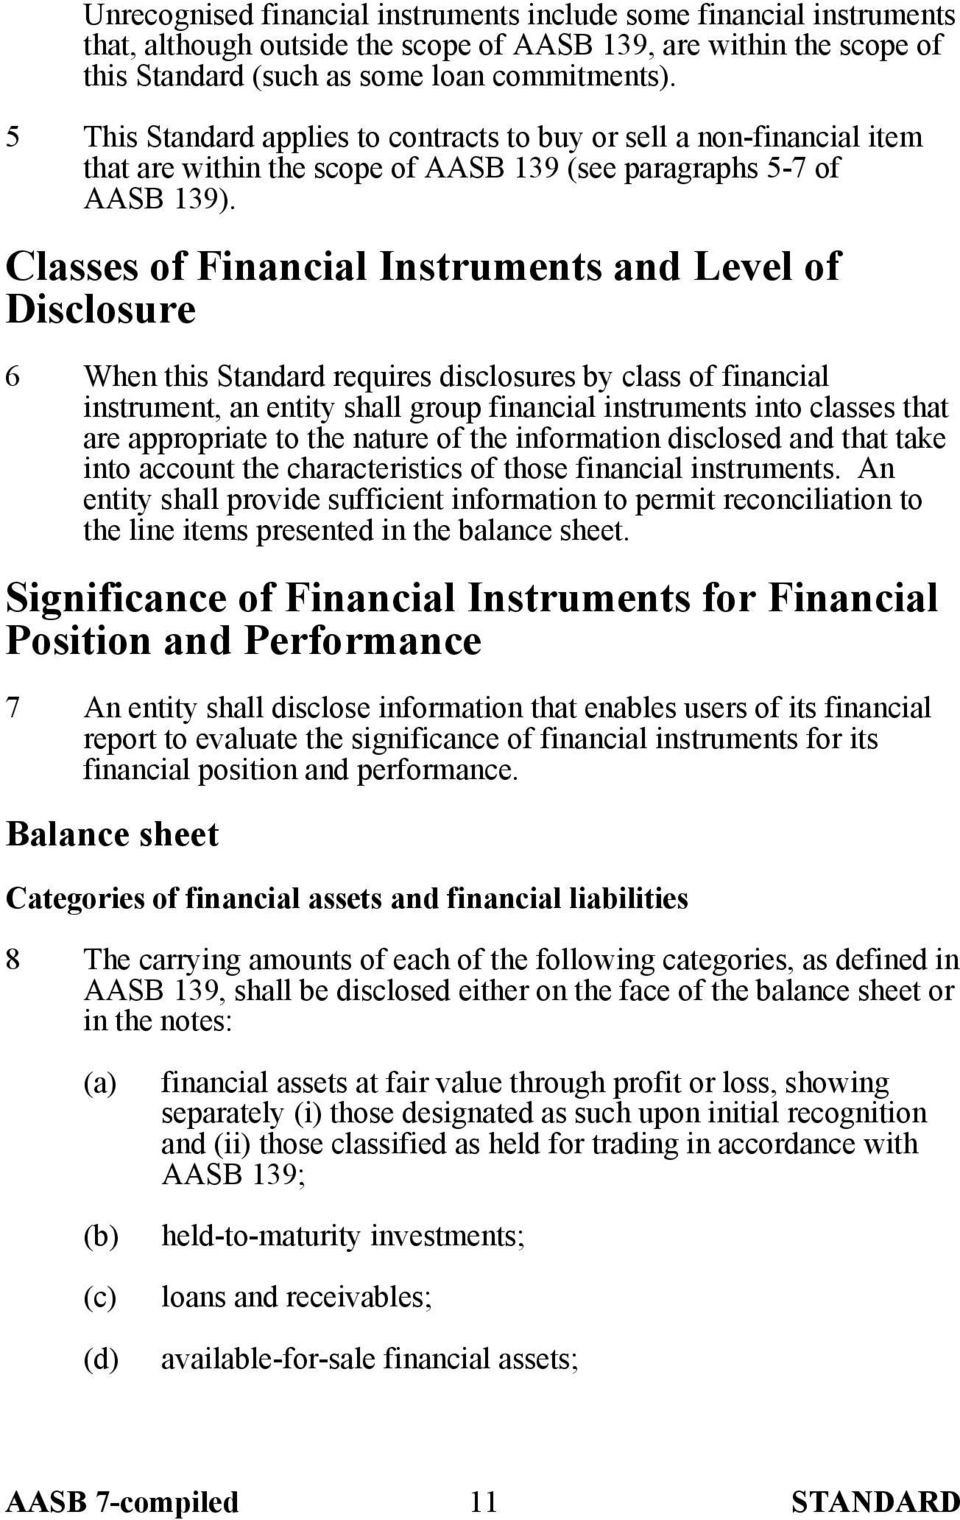 Classes of Financial Instruments and Level of Disclosure 6 When this Standard requires disclosures by class of financial instrument, an entity shall group financial instruments into classes that are